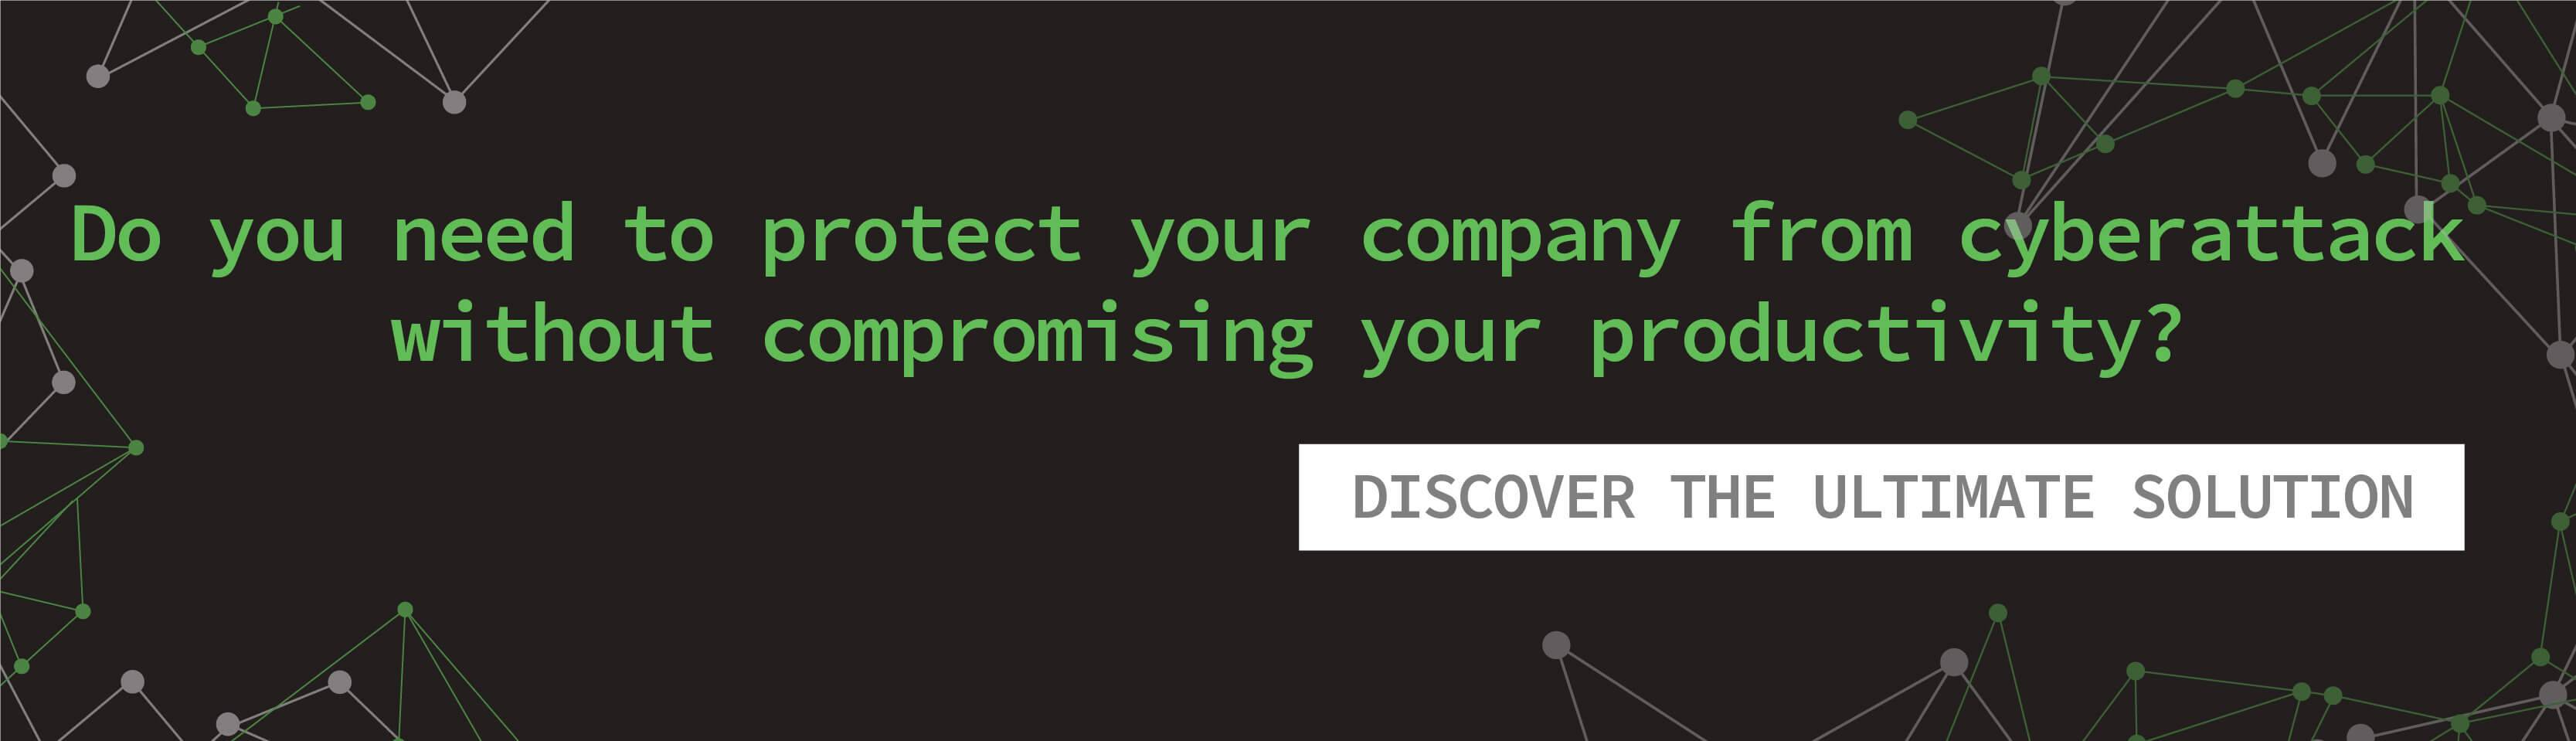 Do you need to protect your company from cyberattack without compromising your productivity? - Discover the ultimate solution